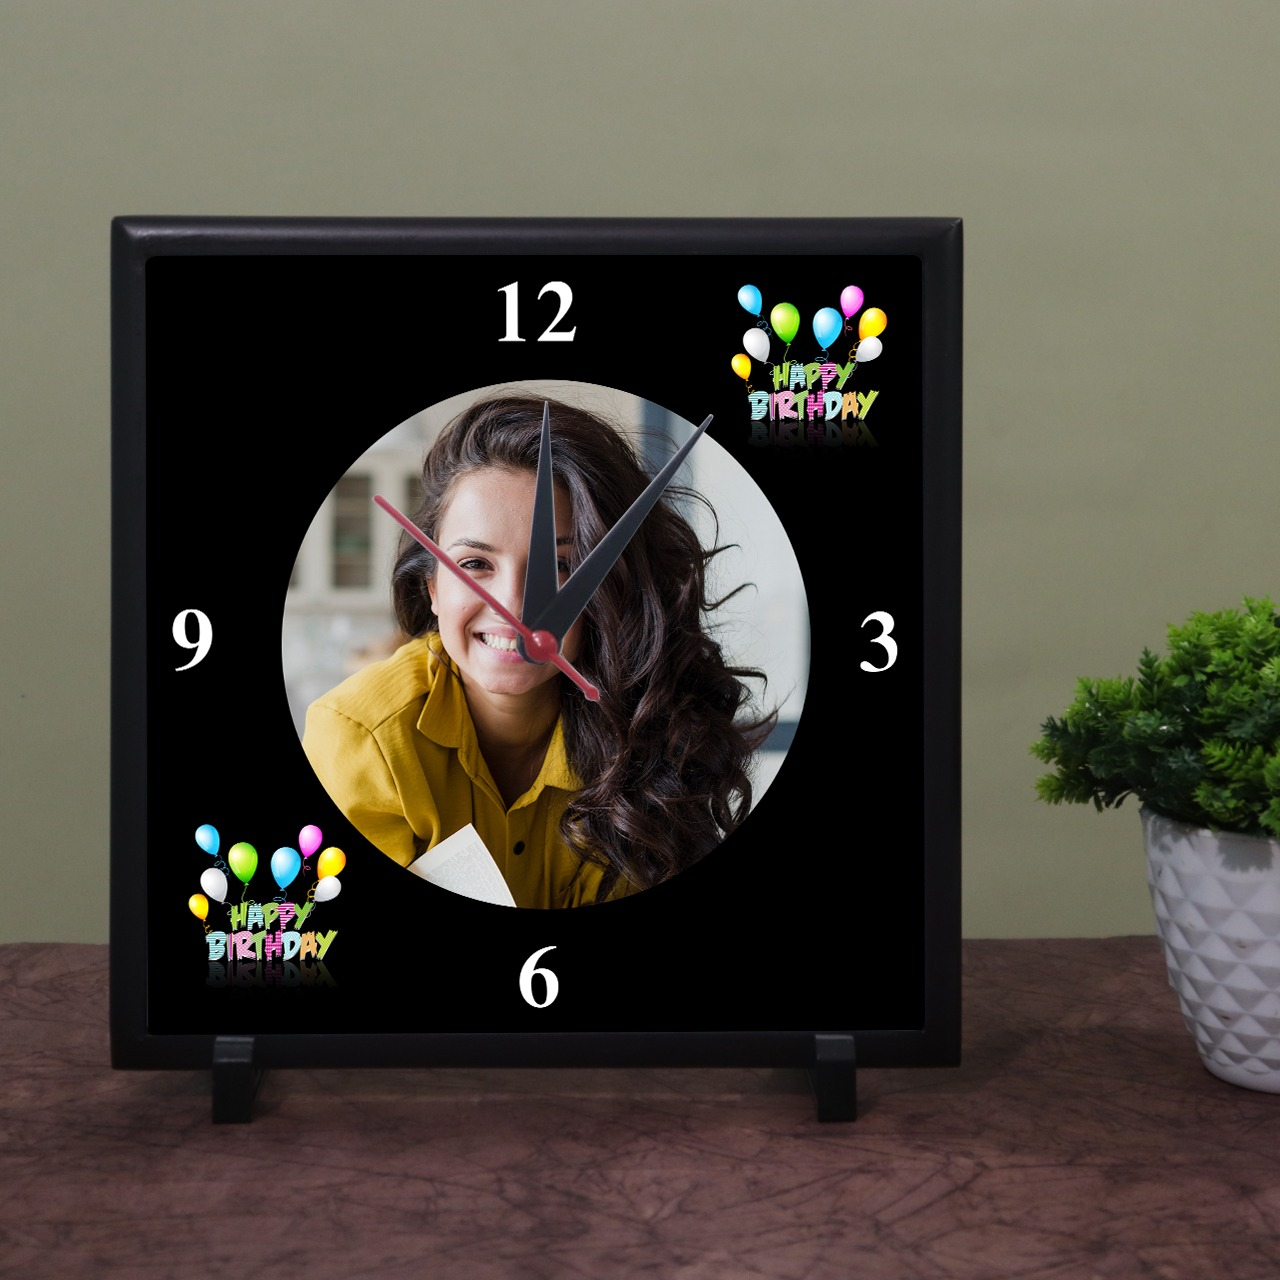 Brithday Personalized Photo Wall Clock